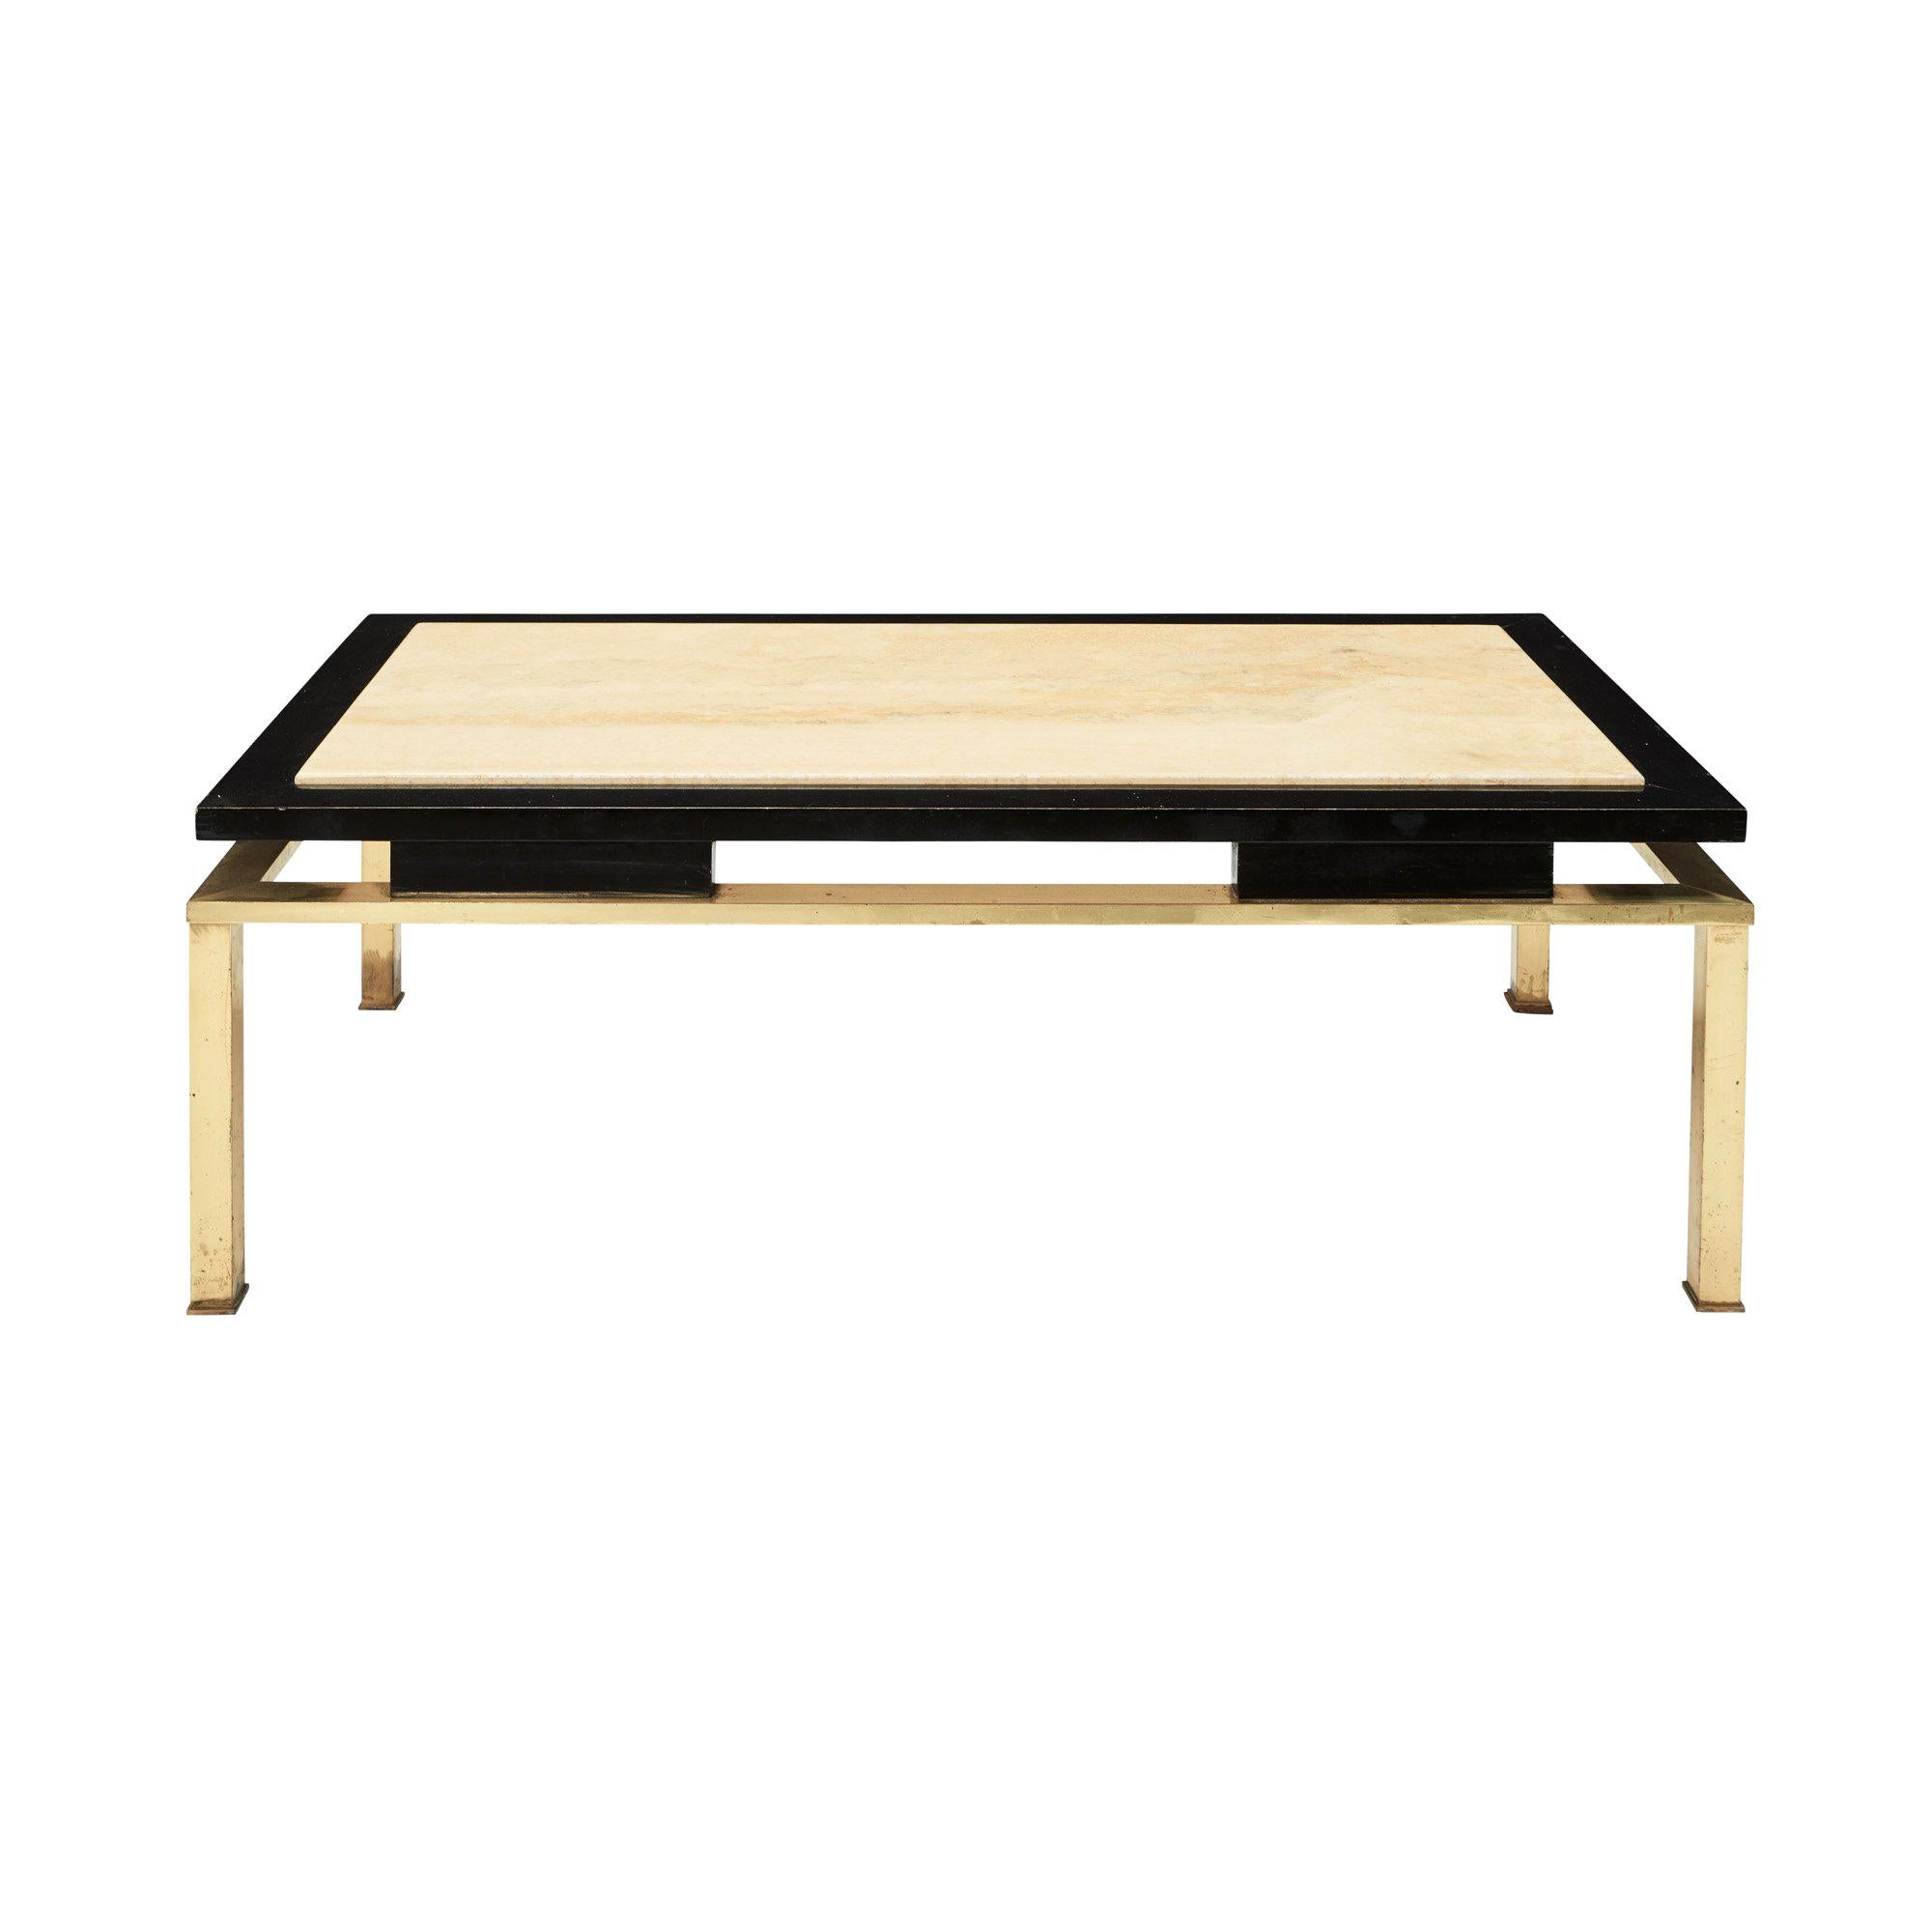 Midcentury French Lacquer Coffee Table With Brass Base And Travertine Inlay  Top